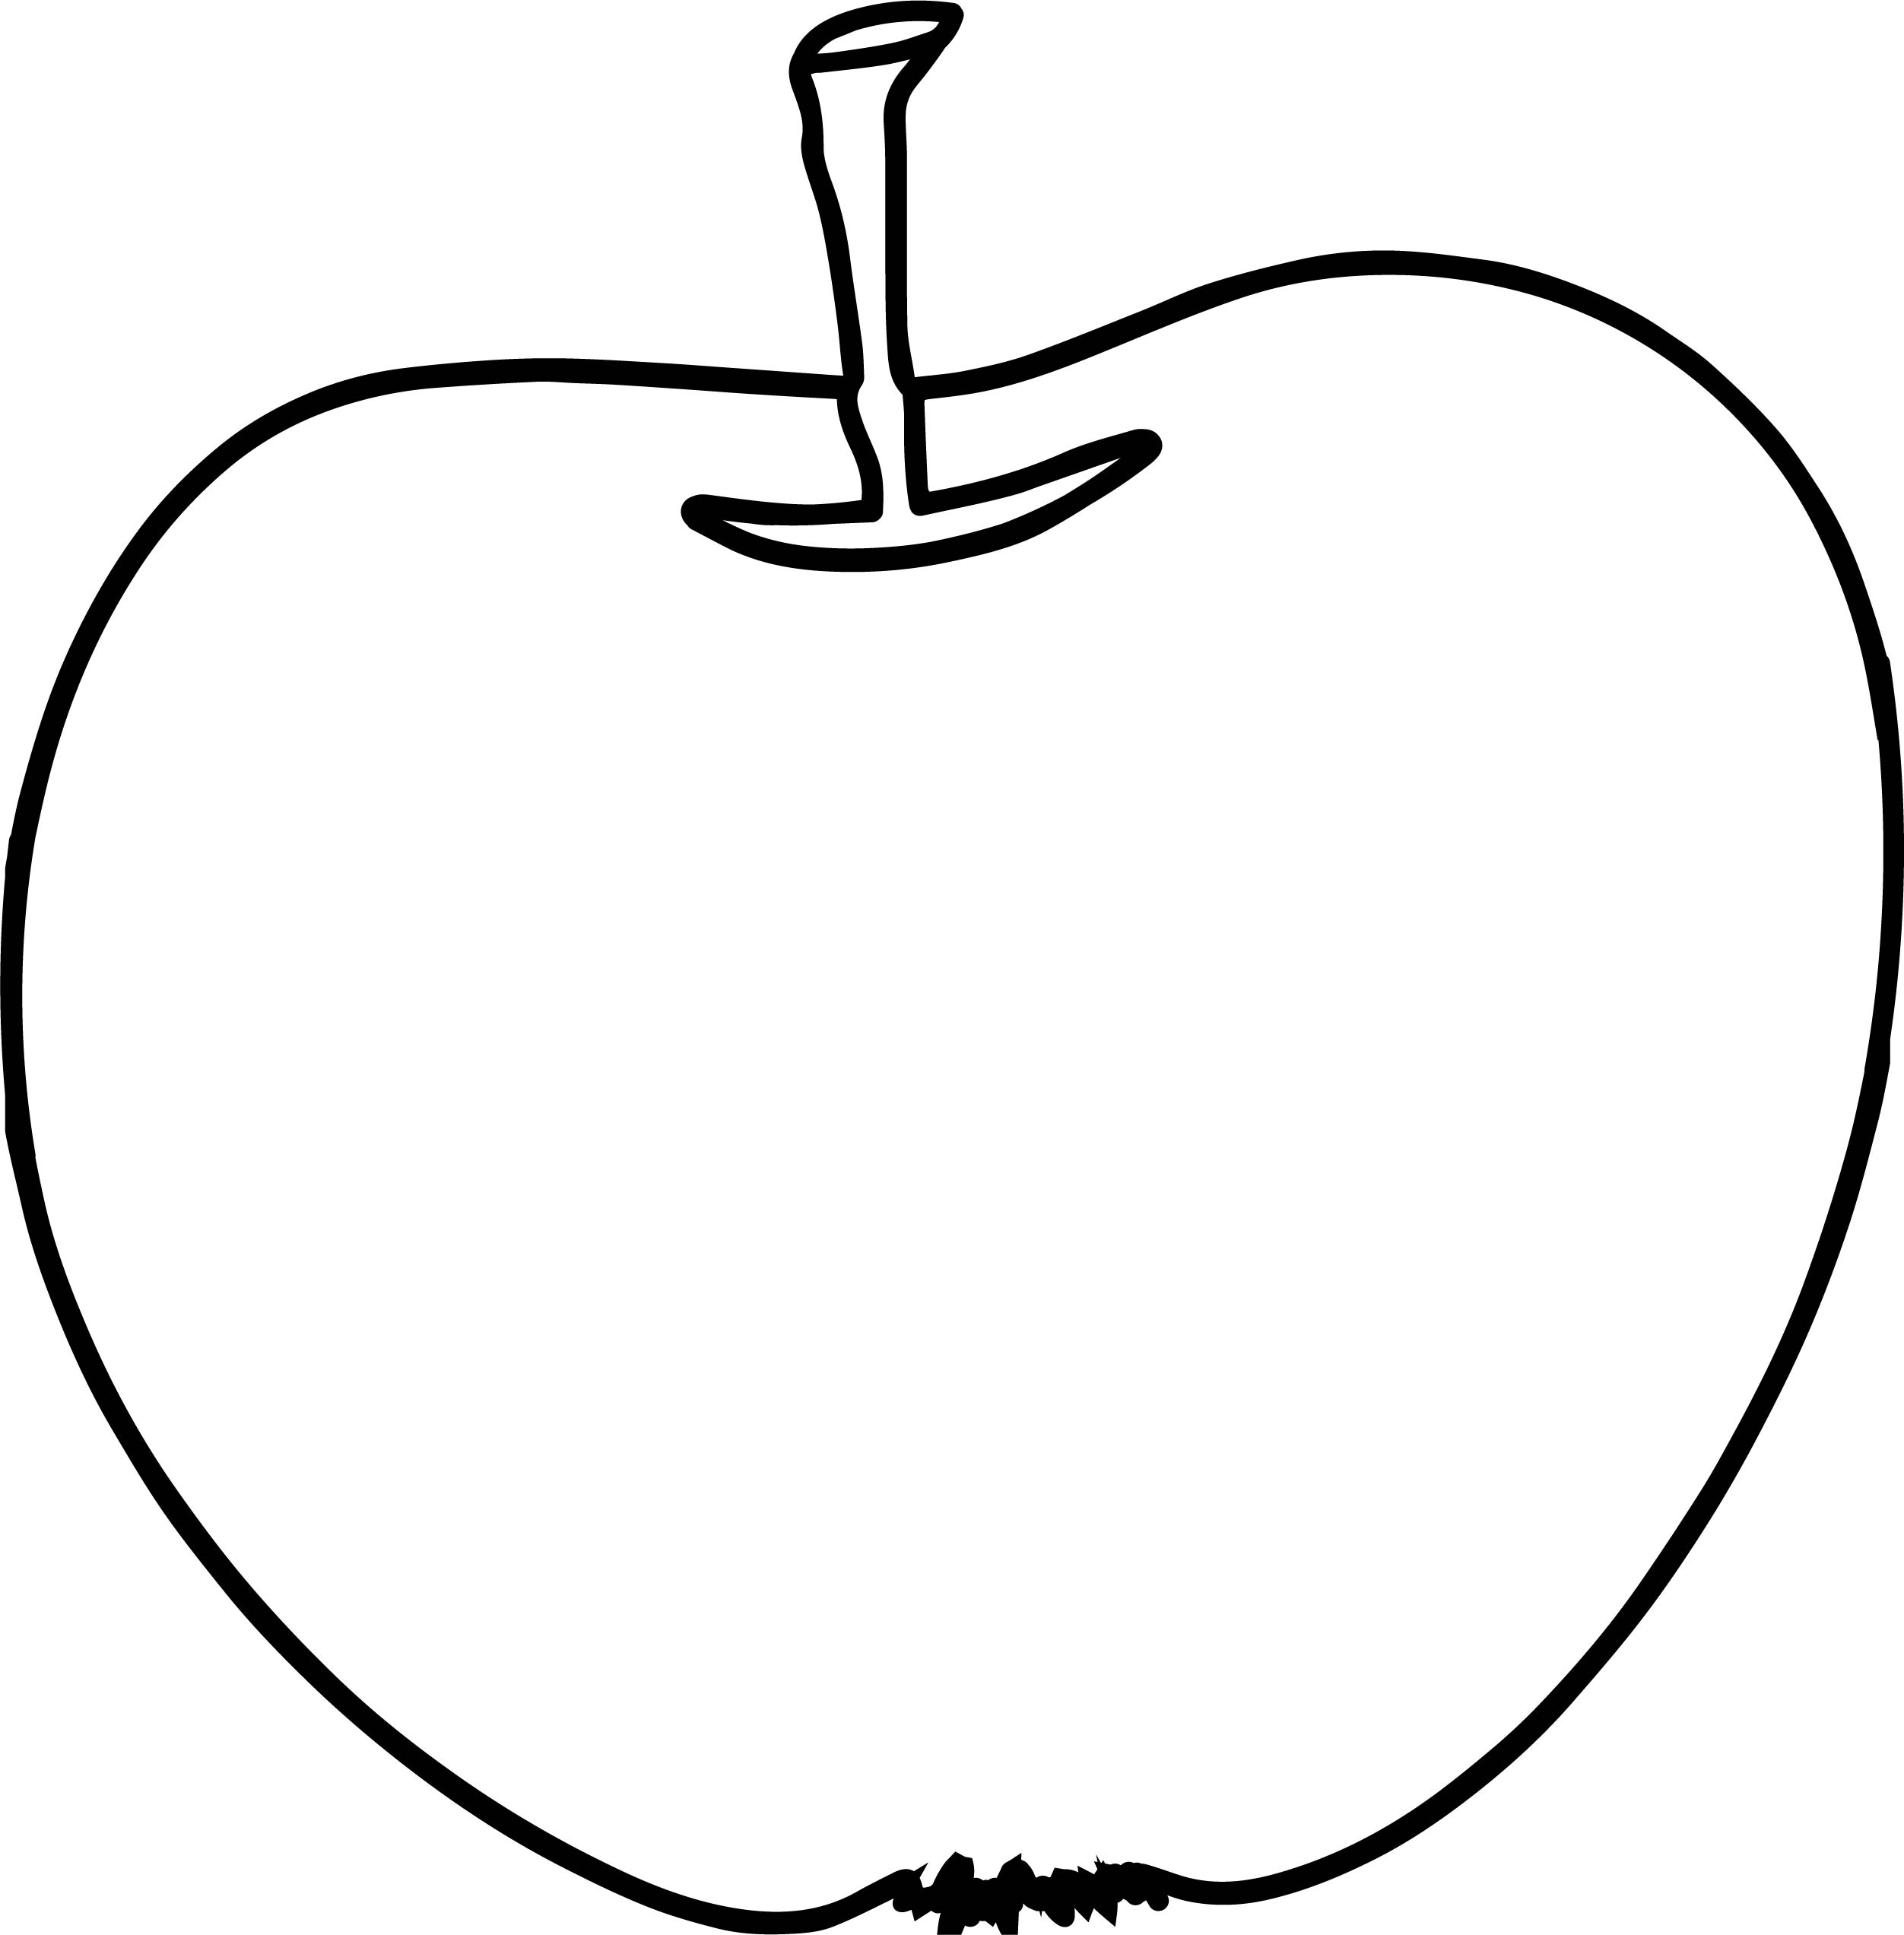 Snack Free Illustration Apple Coloring Page  Wecoloringpage